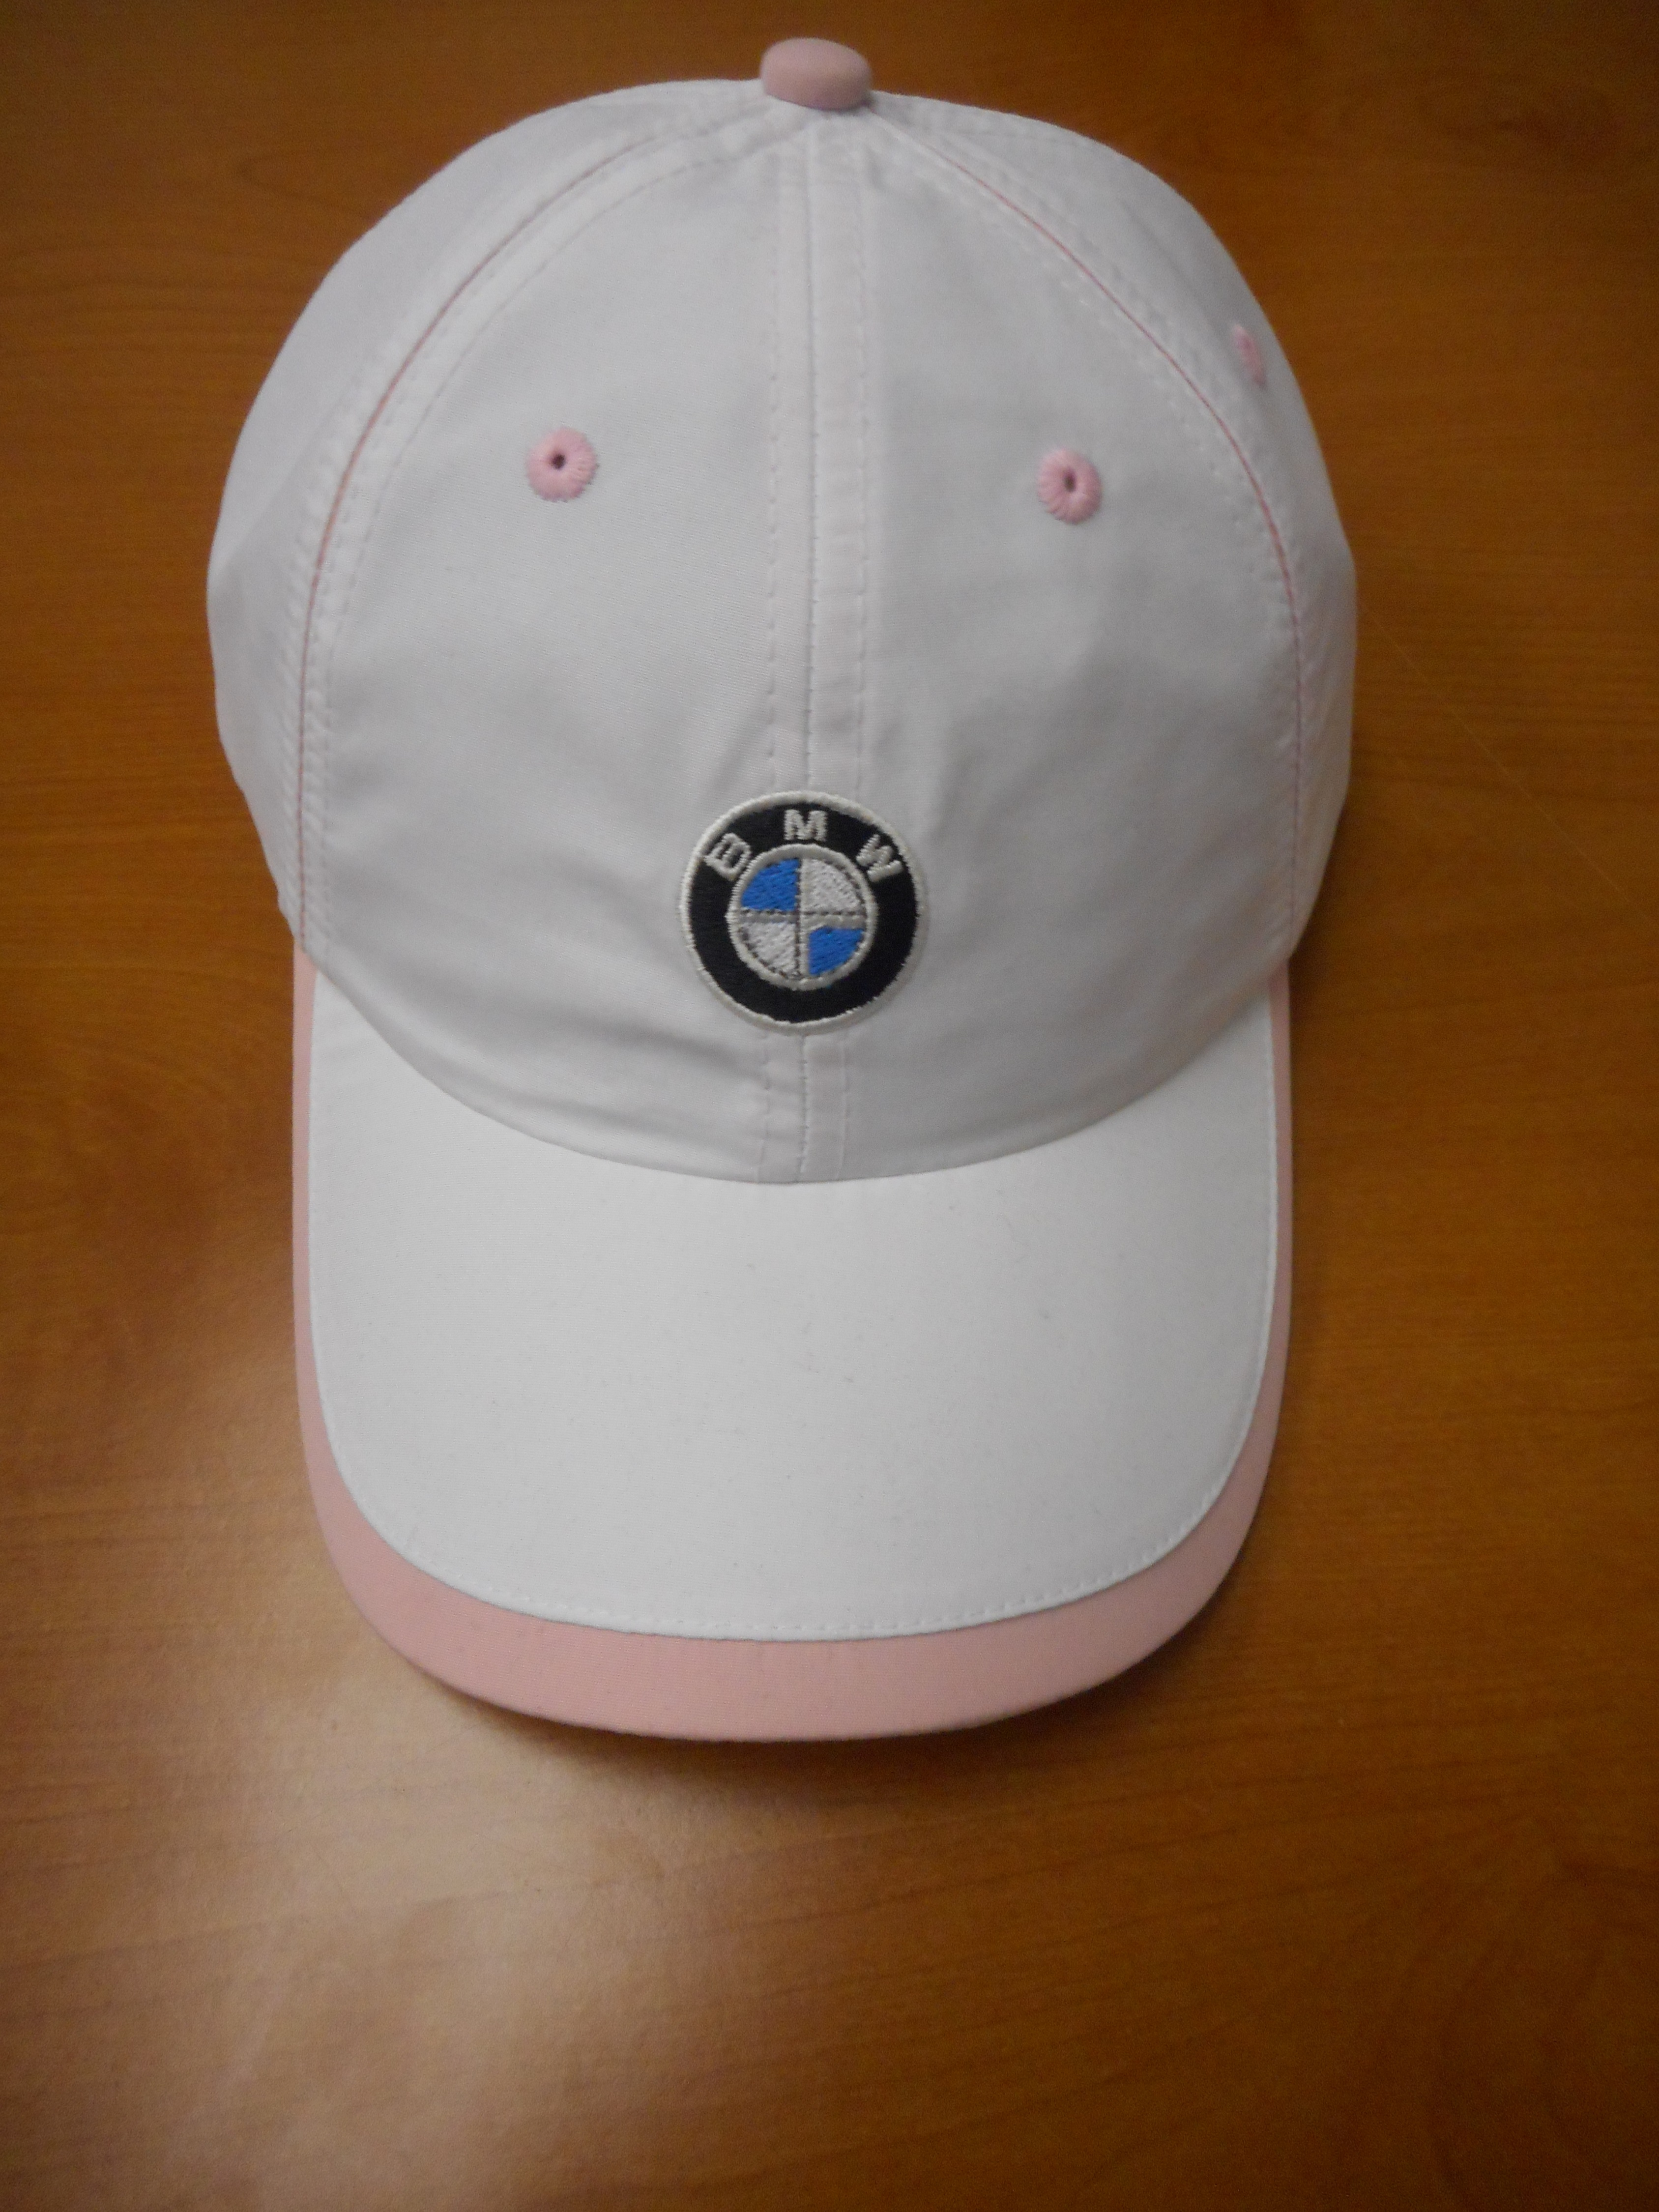 BMW Ladies Microfiber Cap - White/Pink - 80160439609